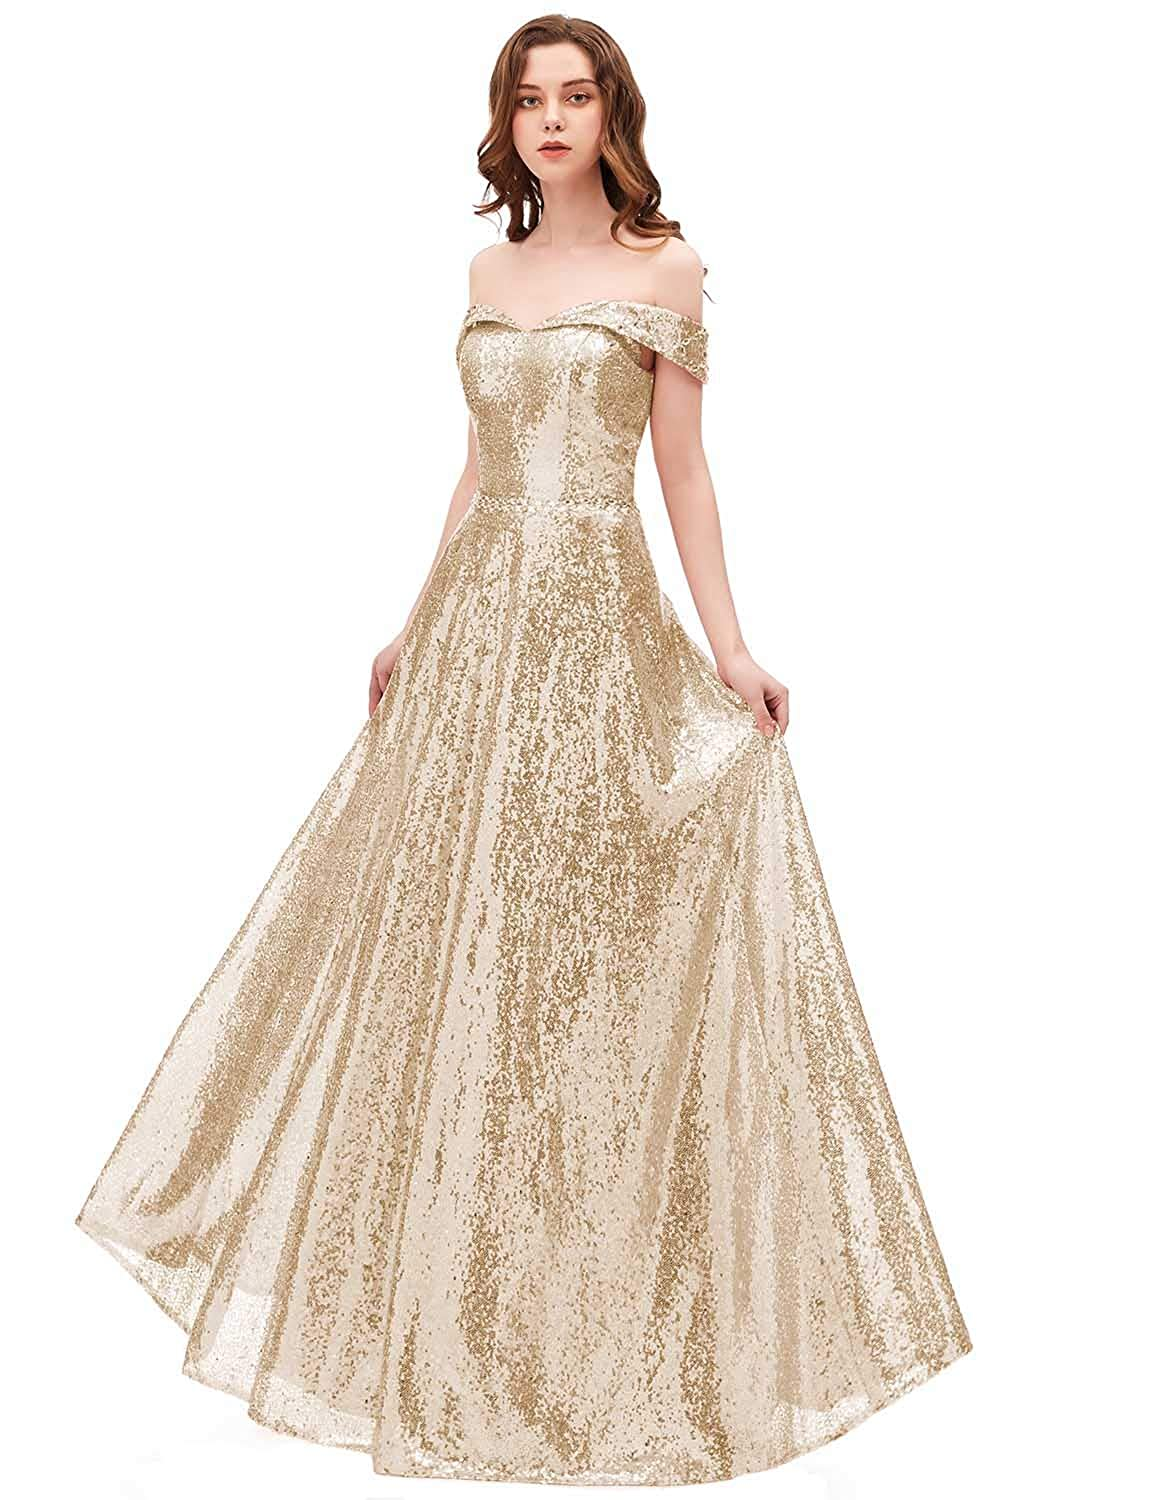 bff28c26932 Empire Line Mother Of The Bride Dresses